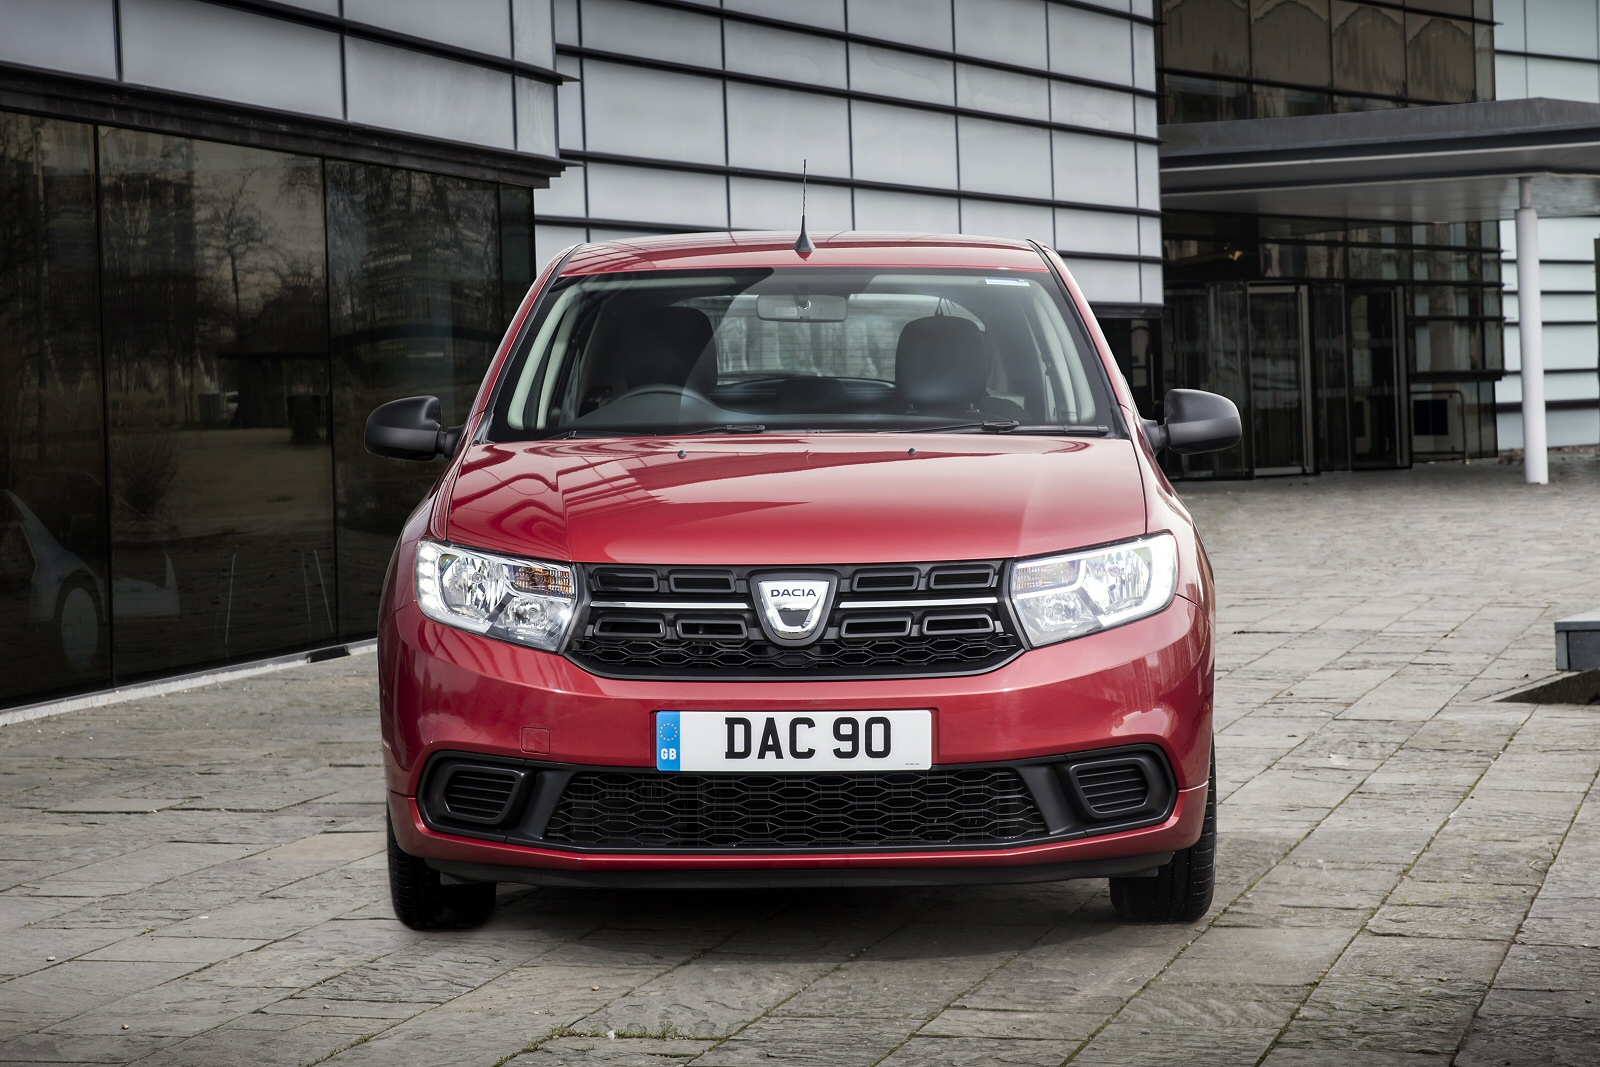 new dacia sandero 1 5 dci laureate 5dr diesel hatchback for sale bristol street. Black Bedroom Furniture Sets. Home Design Ideas